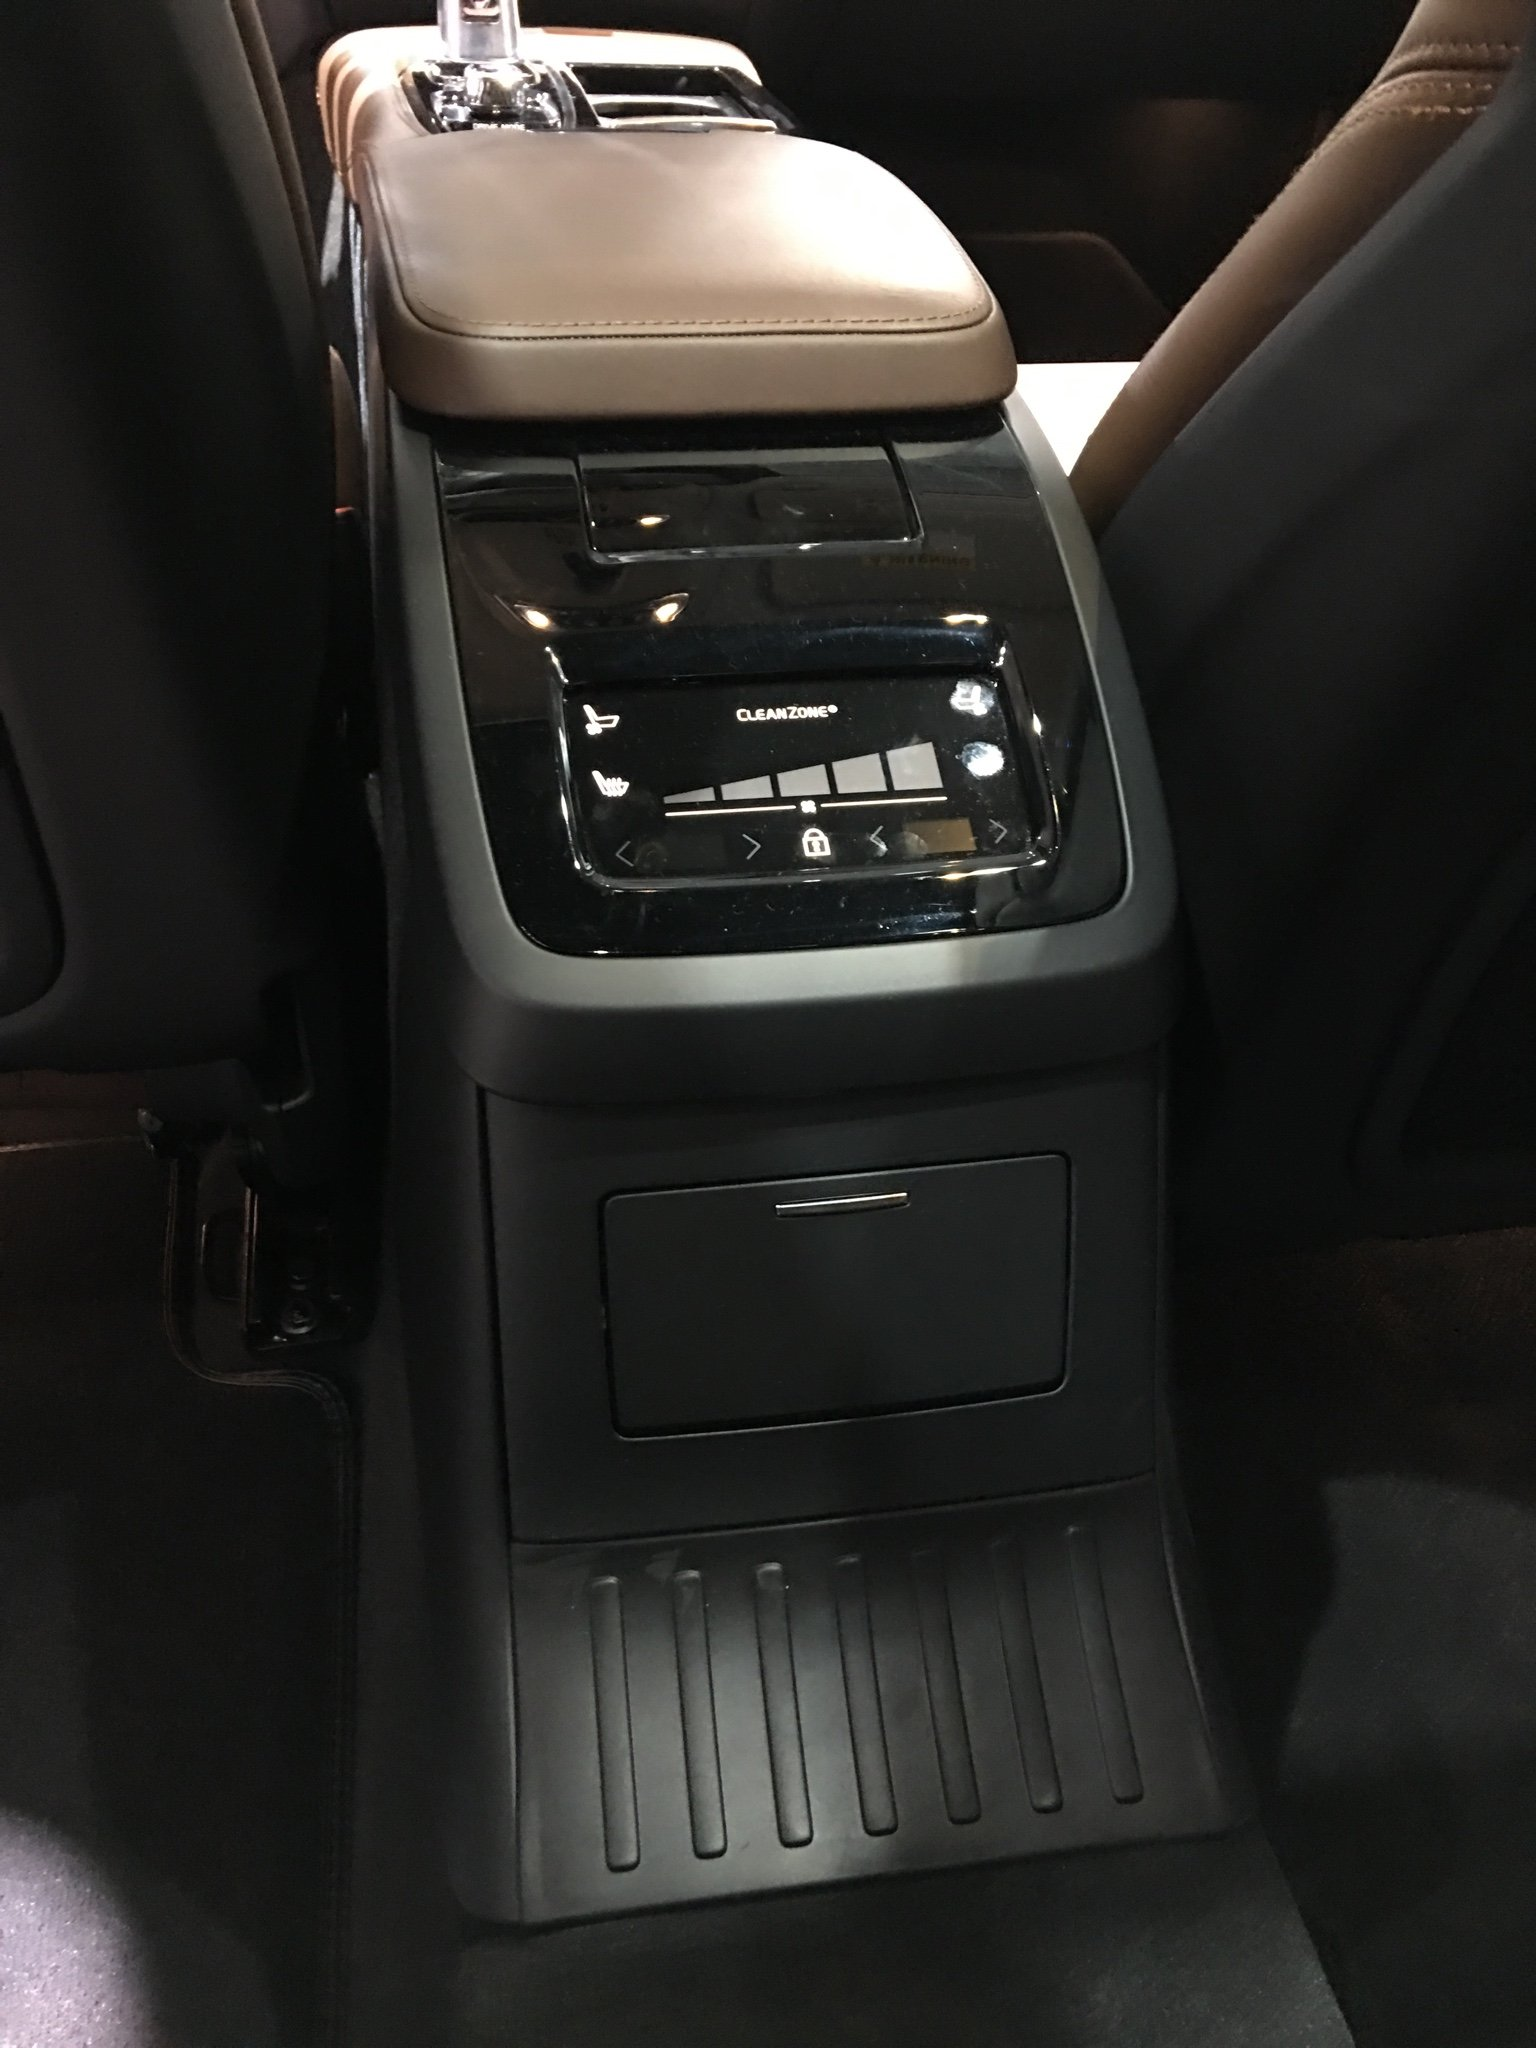 2018 volvo s90 interior. plain 2018 sent from my iphone using tapatalk for 2018 volvo s90 interior